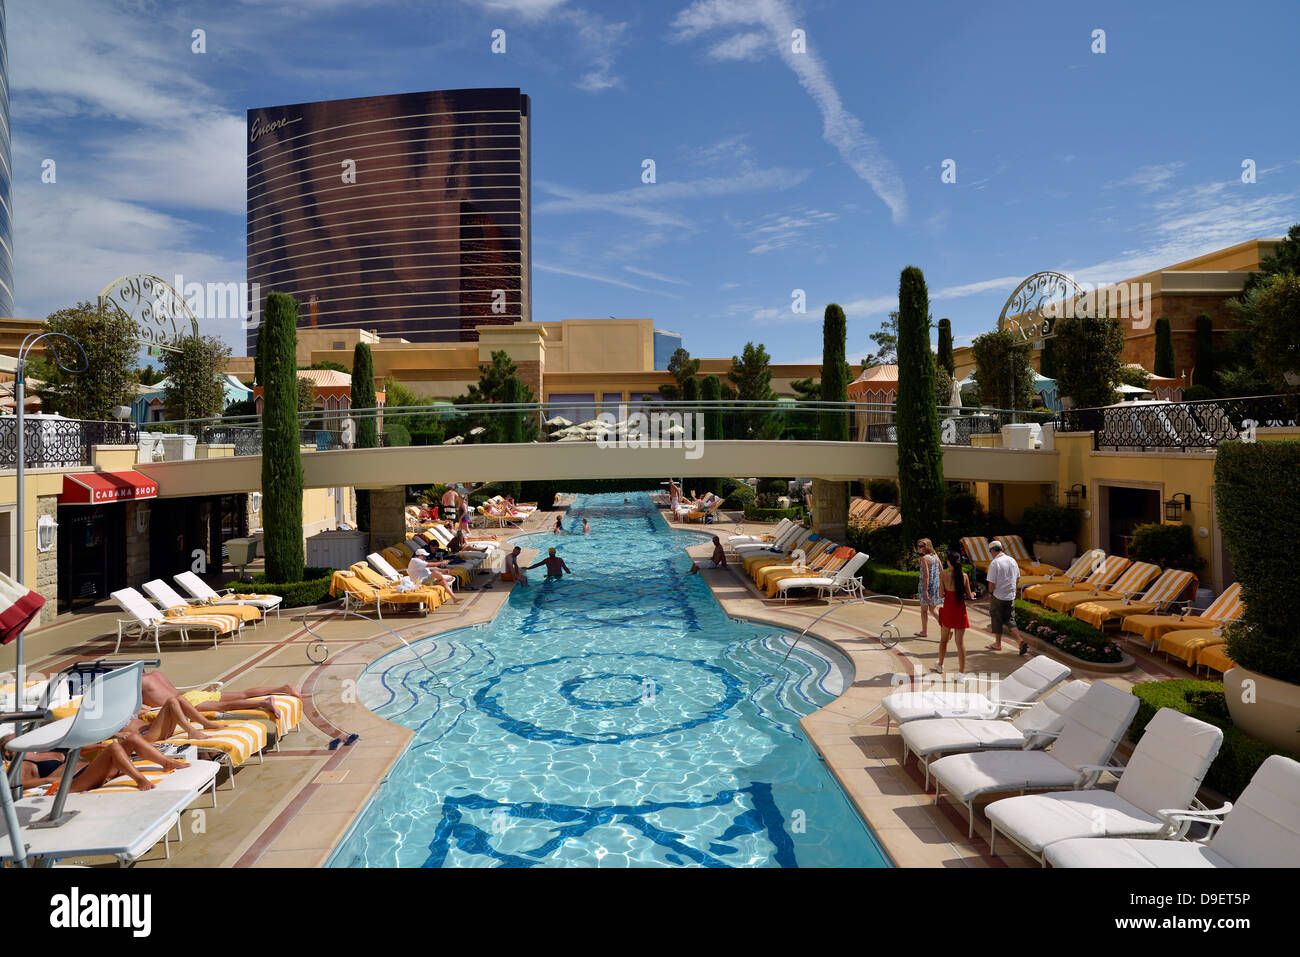 Wynn Las Vegas Hotel High Resolution Stock Photography And Images Alamy